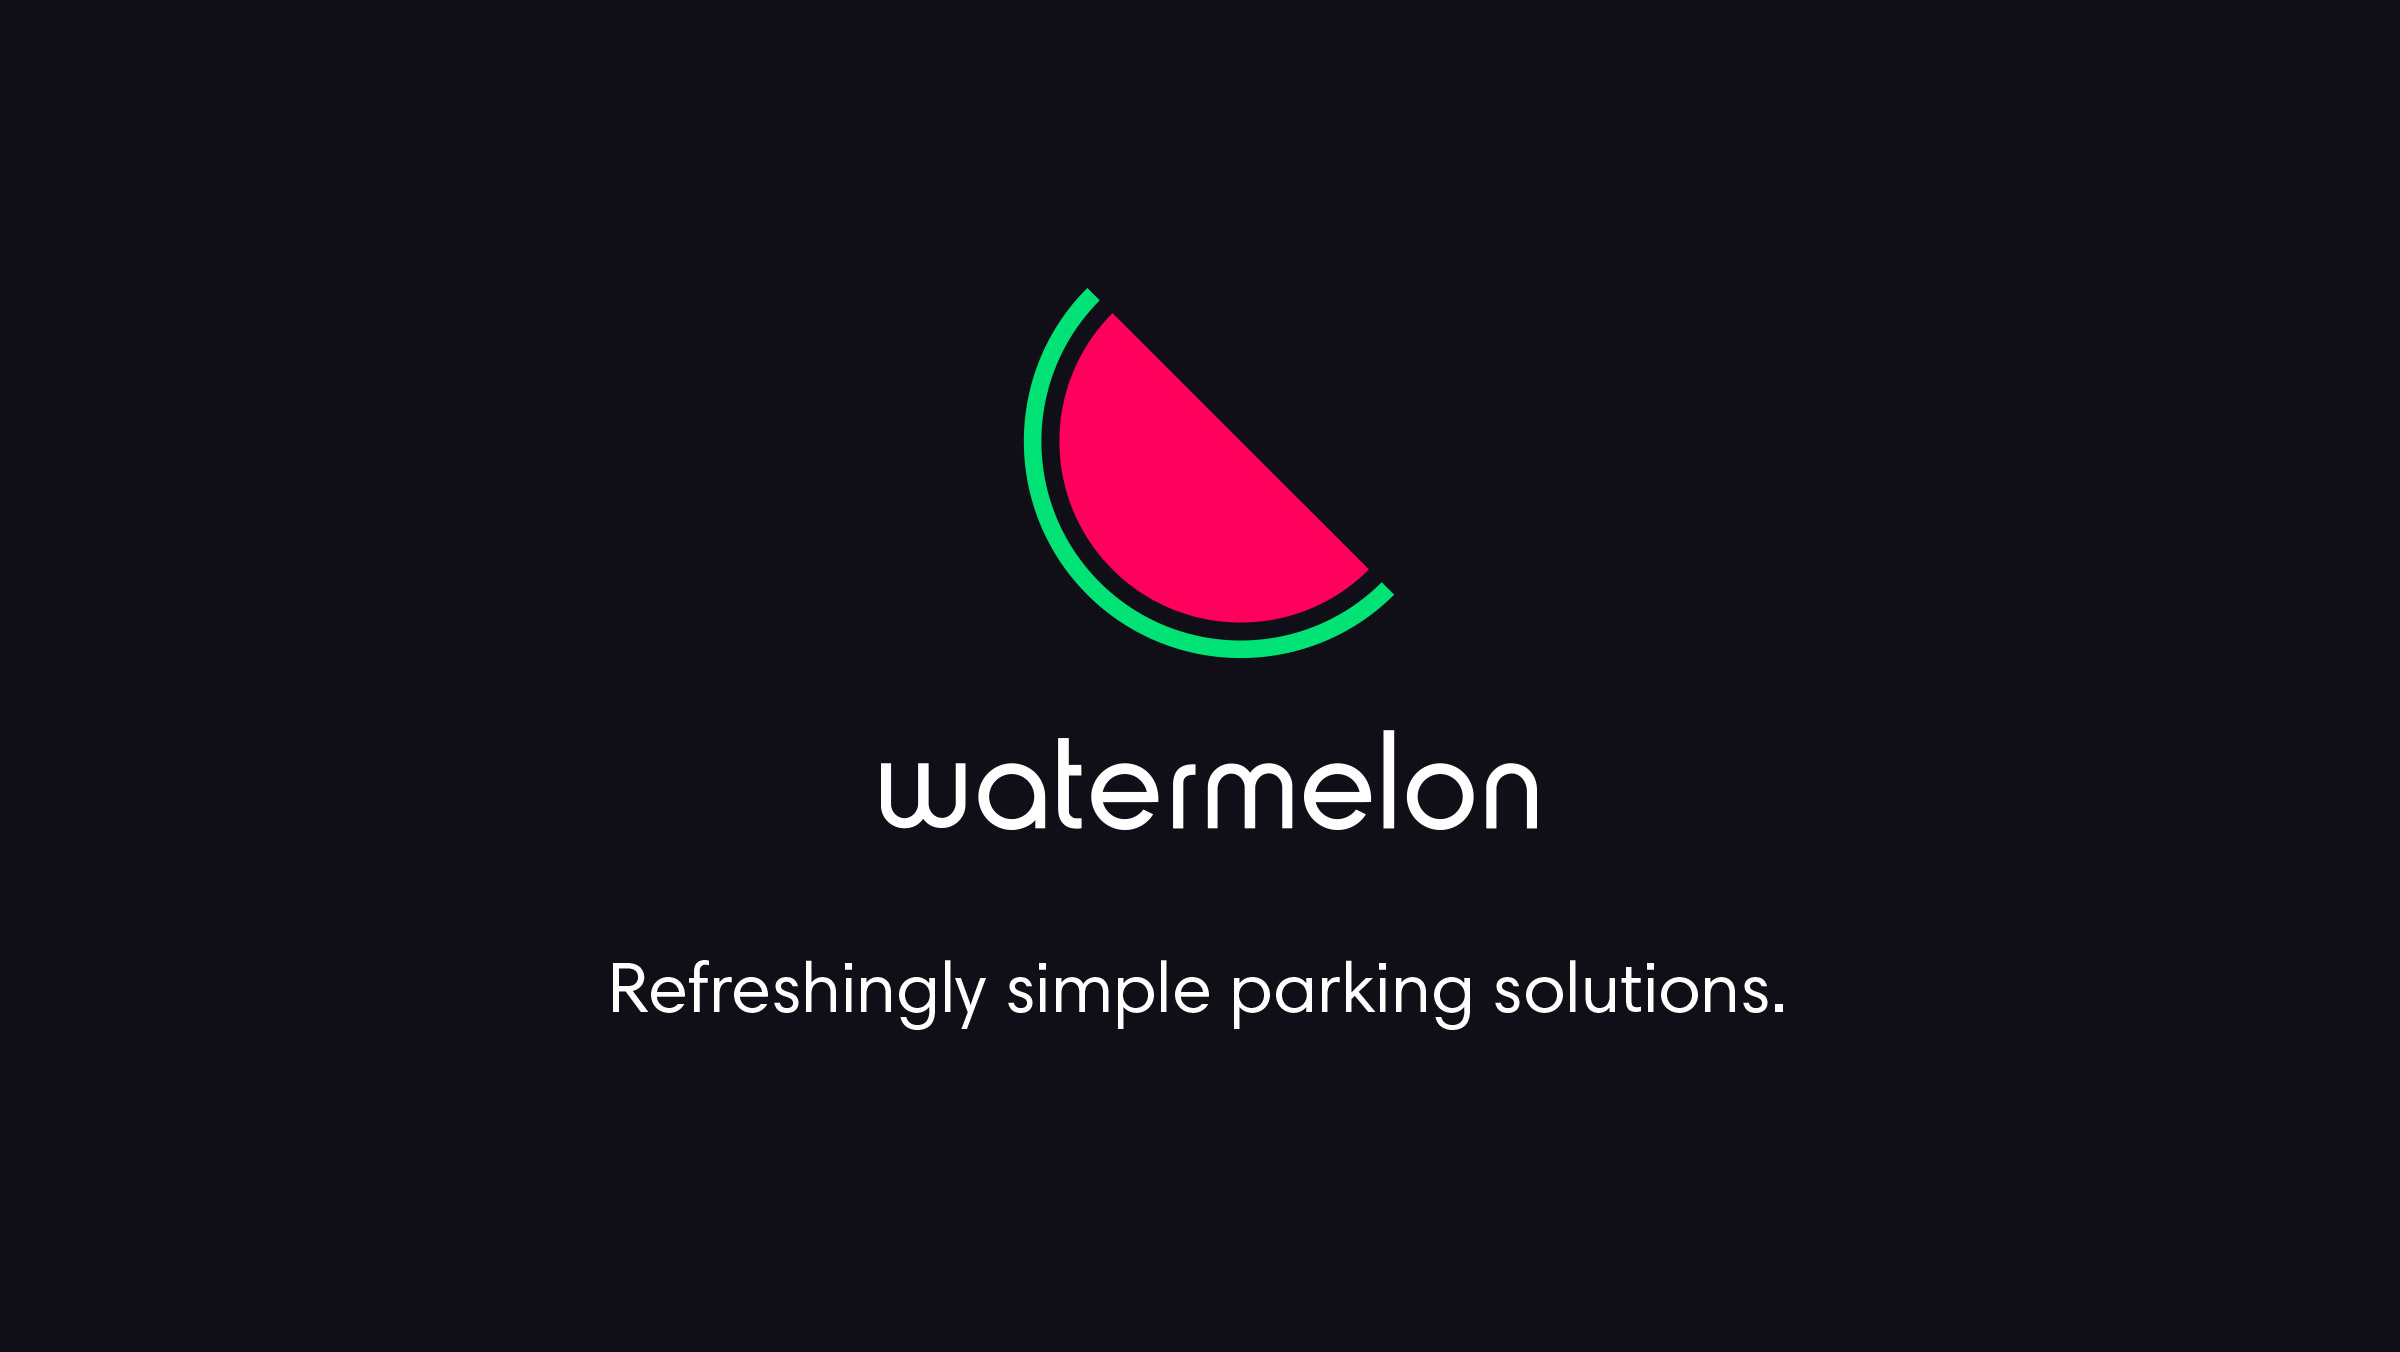 Watermelon. Brand logo and tagline, 'Refreshingly simple parking solutions'.